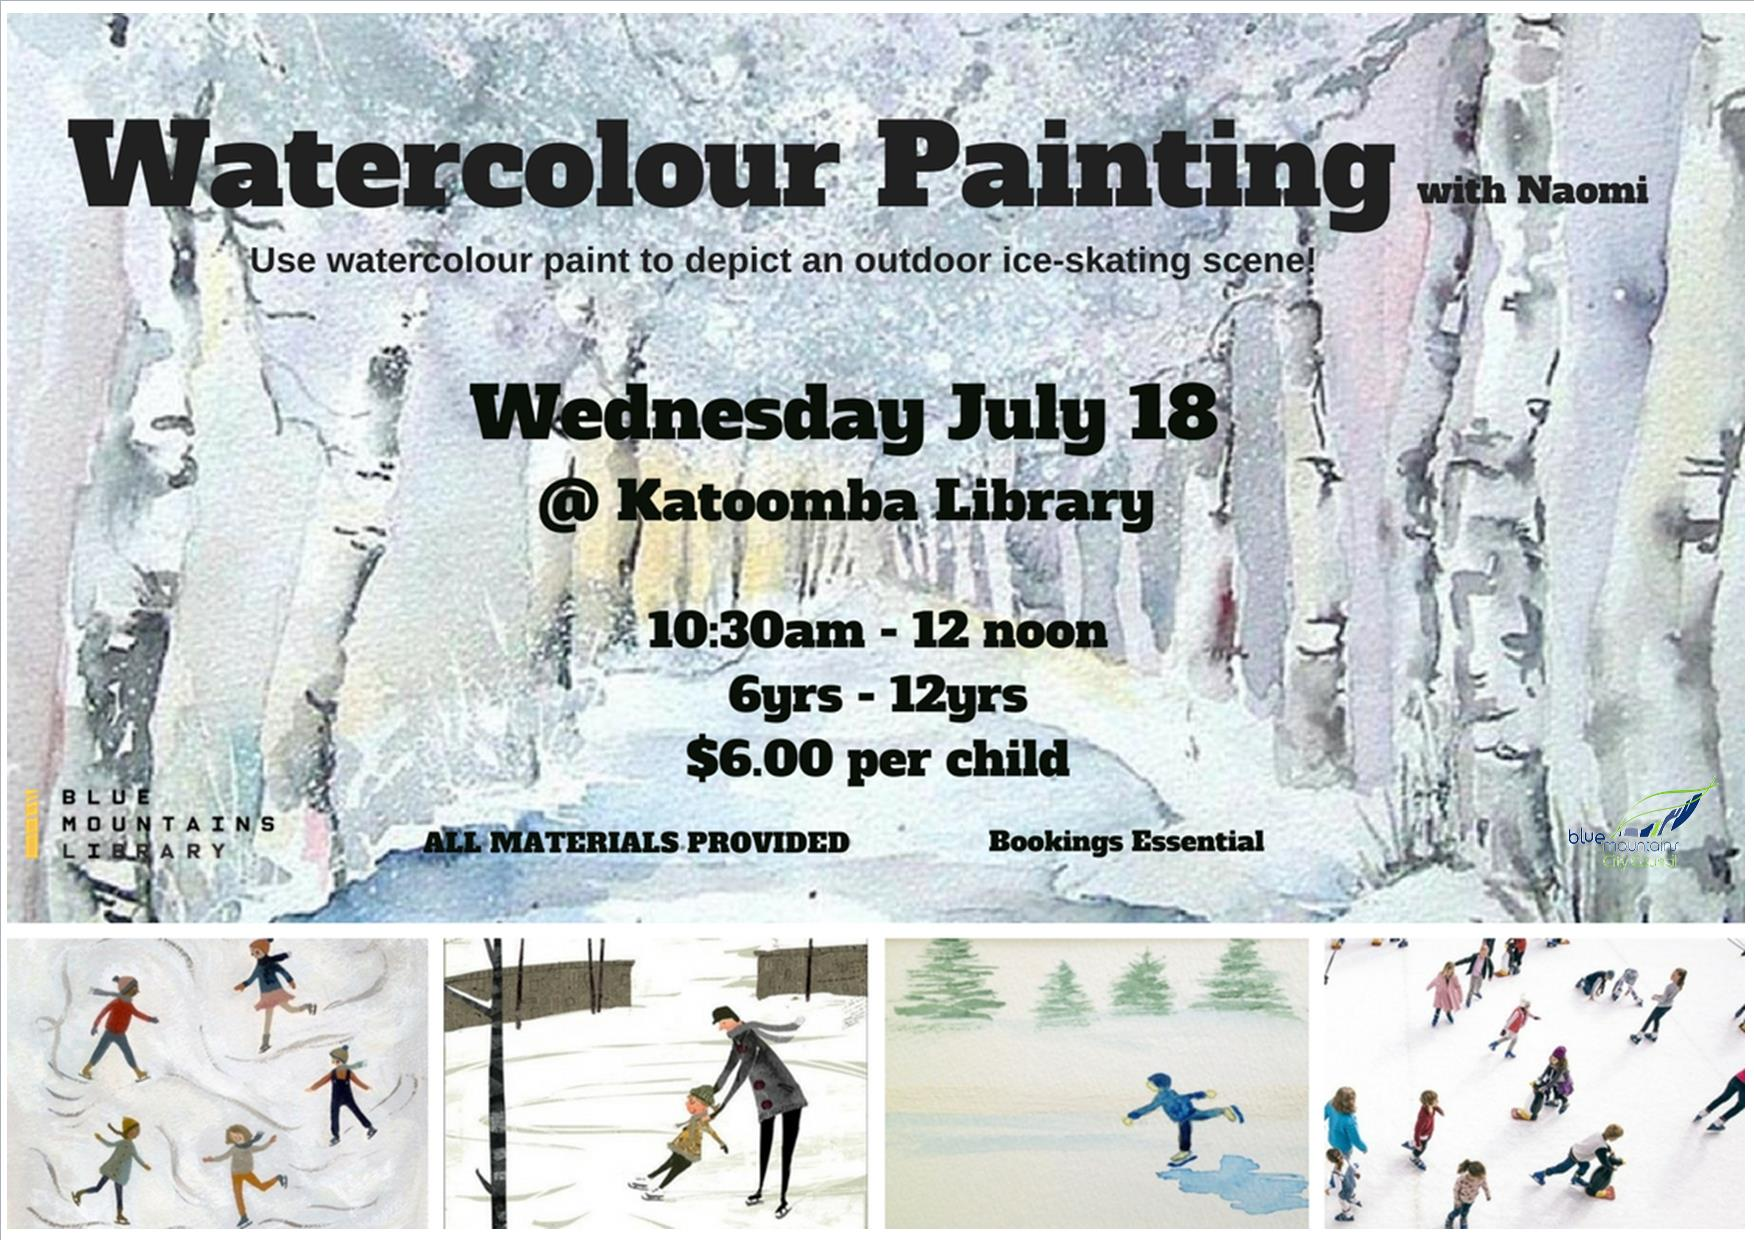 Watercolour Painting, Katoomba Library, Wednesday 18th July, 10:30-12noon, 6-12yrs, $6 per child